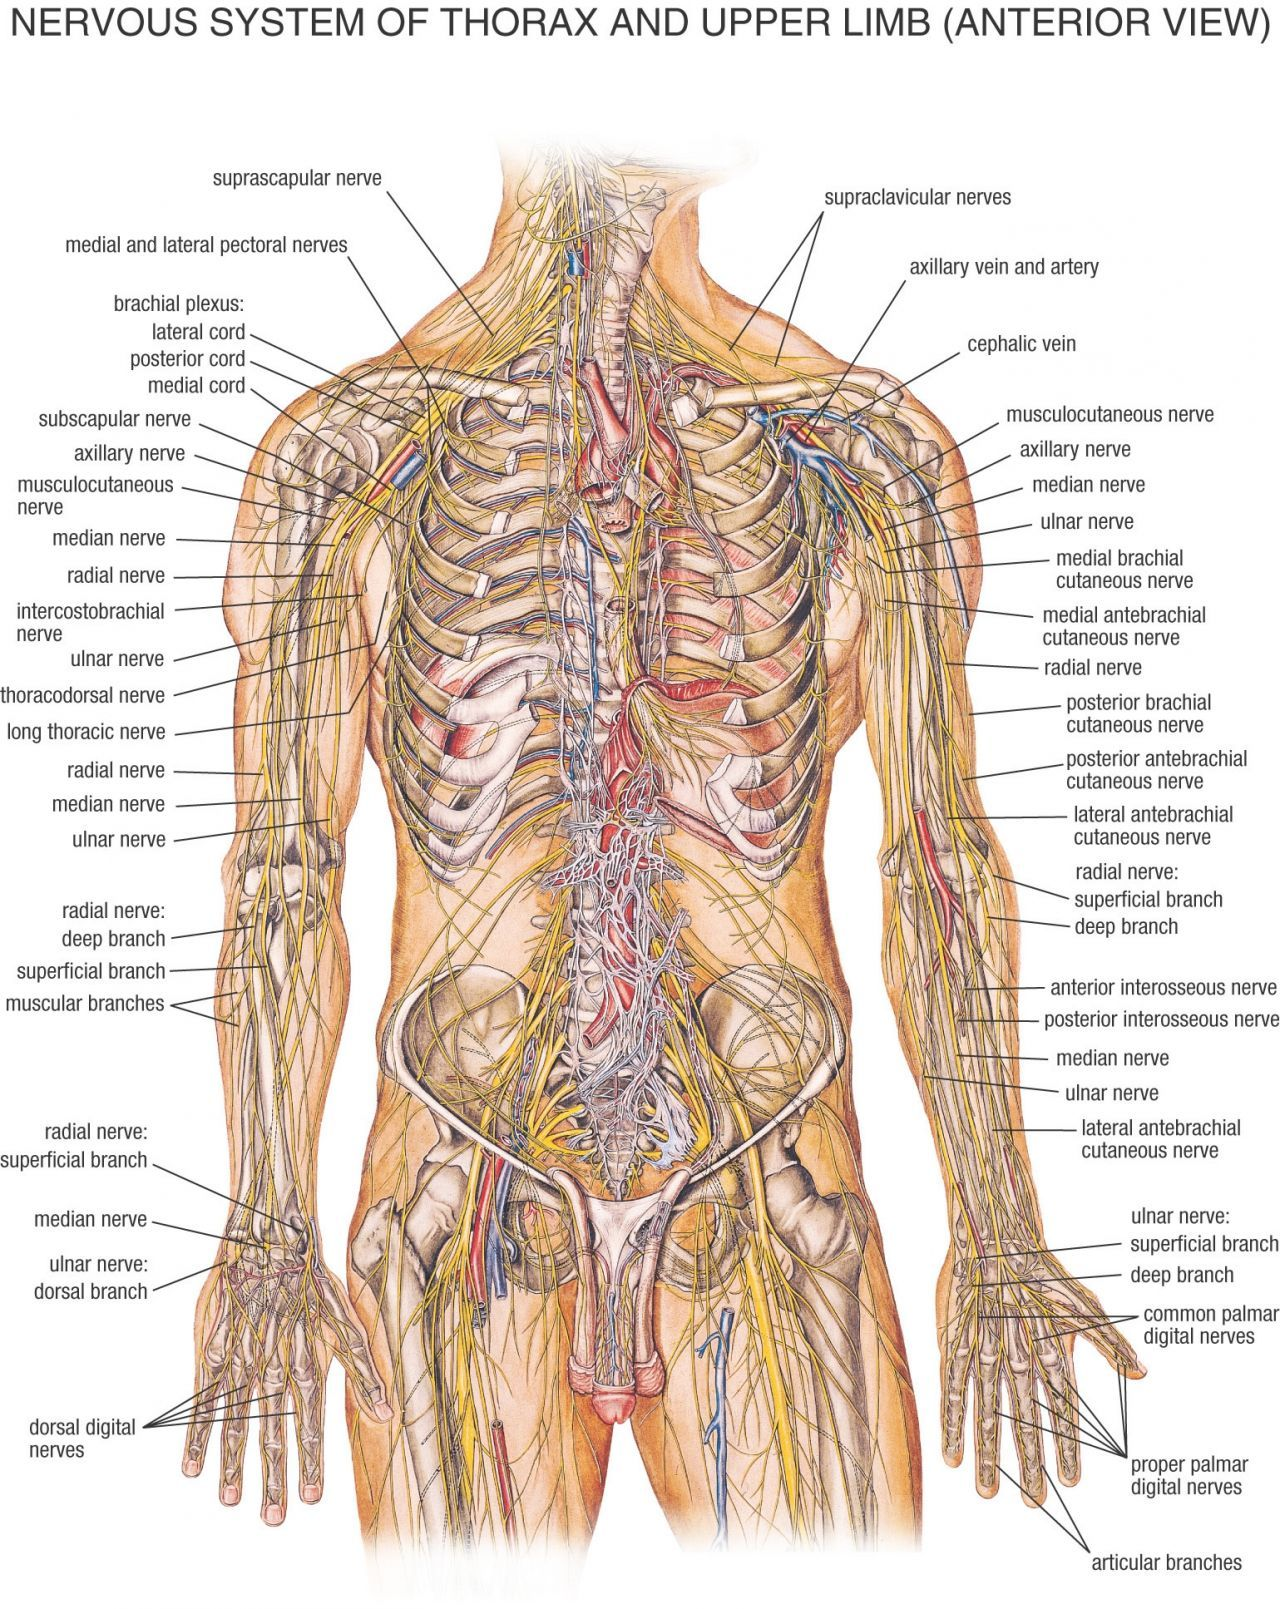 recognize all the systems of the body | anatomy of the human body, Skeleton